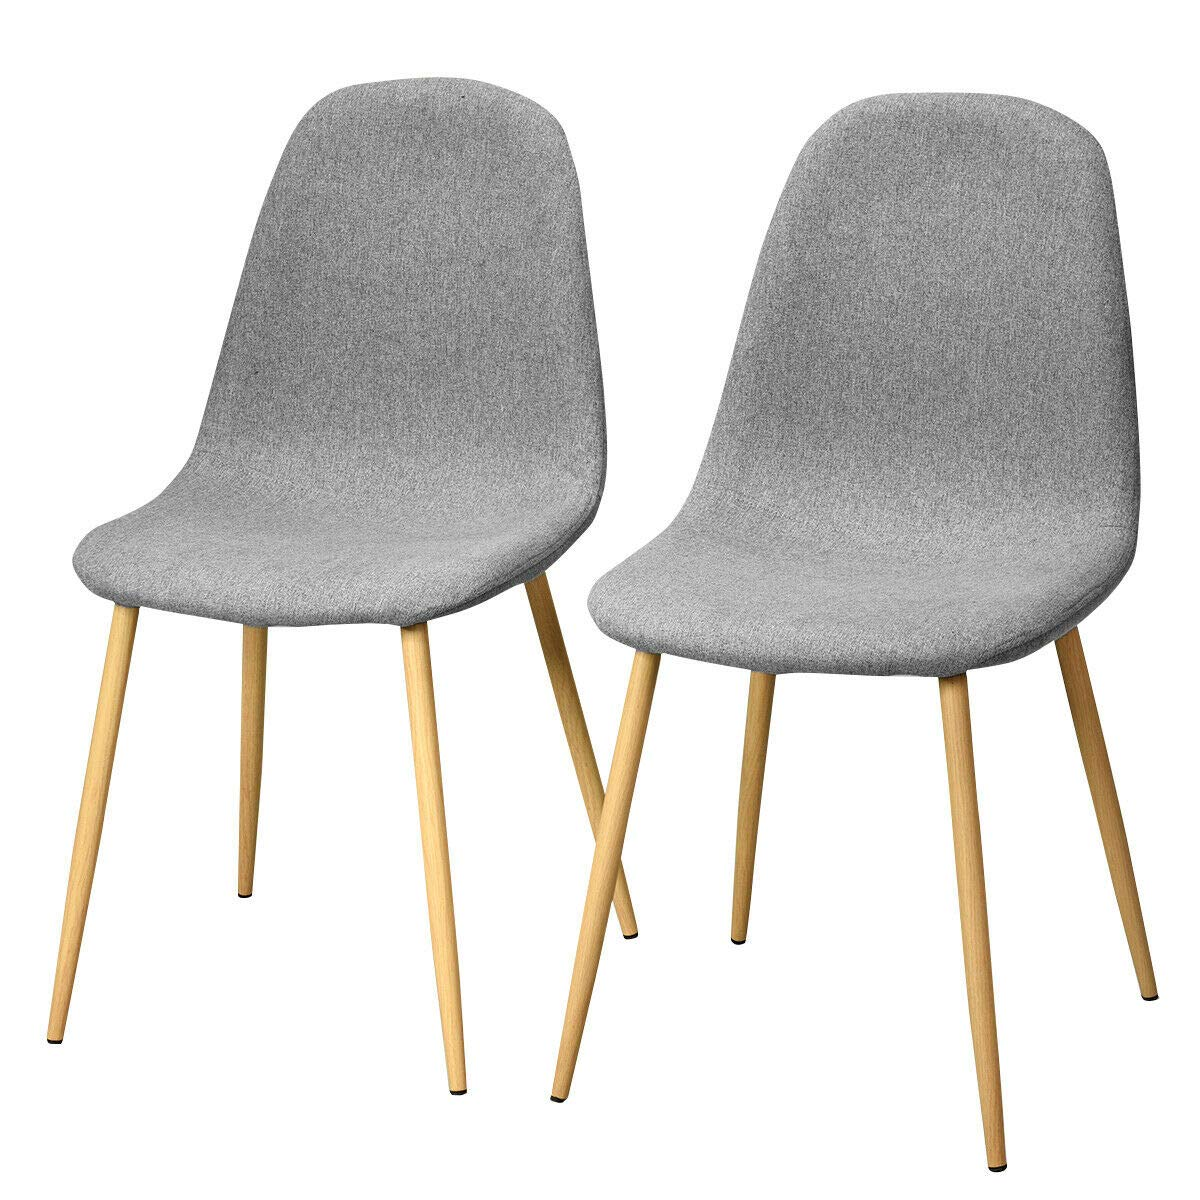 Giantex Set of 2 Kitchen Dining Chairs, Easily Assemble Modern Fabric Cushion Seat Chair w Metal Legs, Mid Century Armless Chairs for Kitchen, Dining Room, Restaurant, Gray